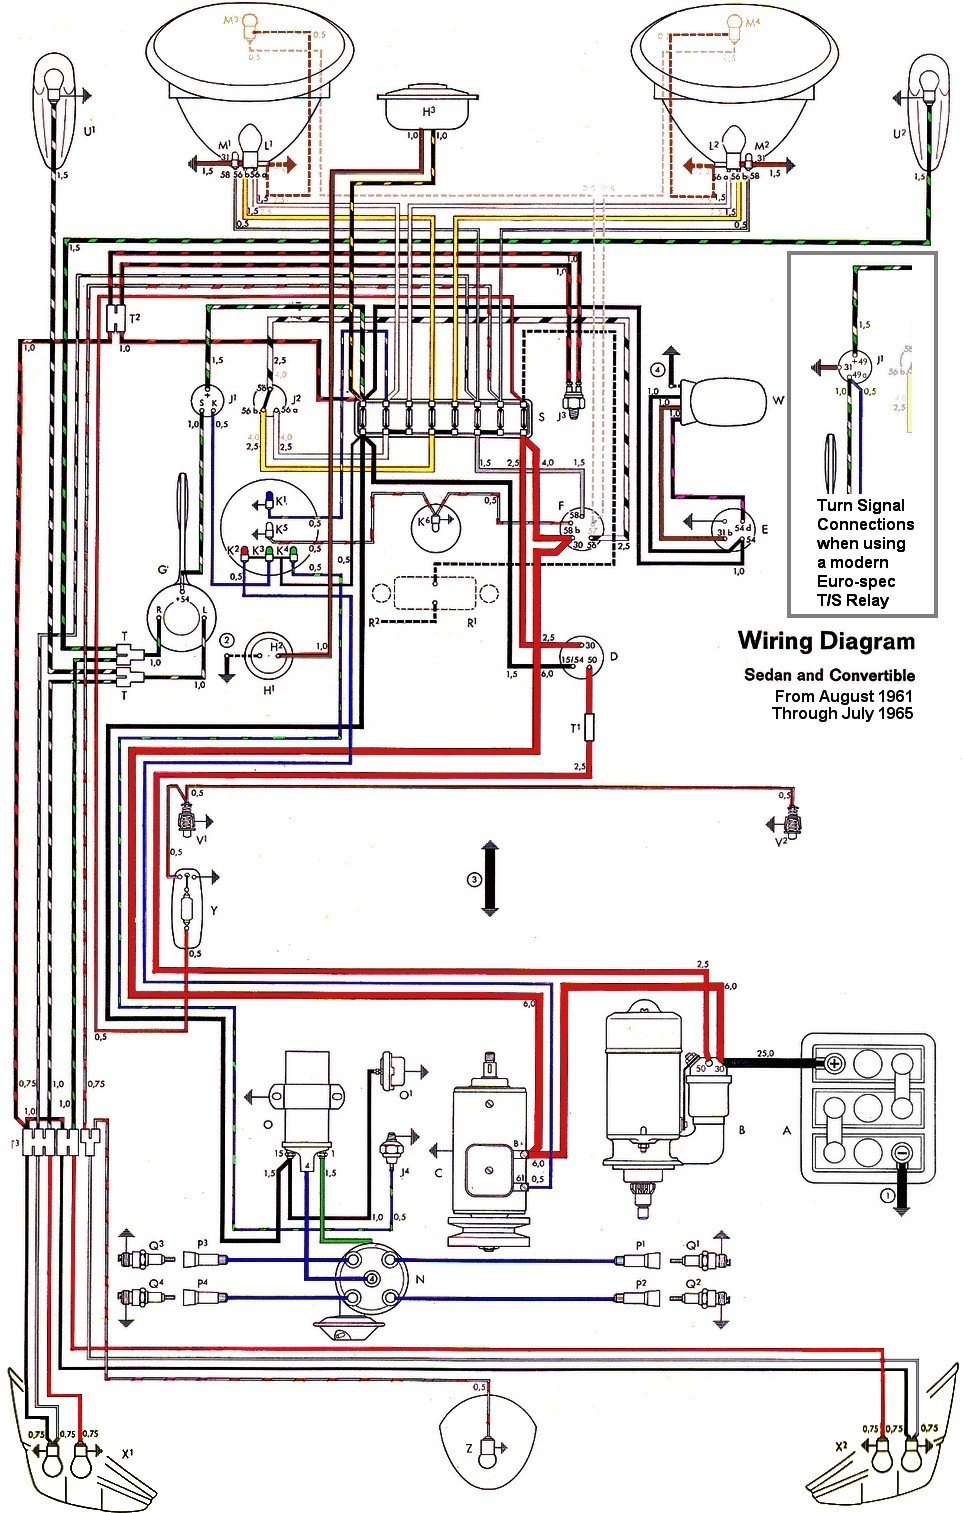 63 Vw Fuse Diagram Another Wiring Diagrams 2003 Golf Online Schematics Rh Delvato Co 1990